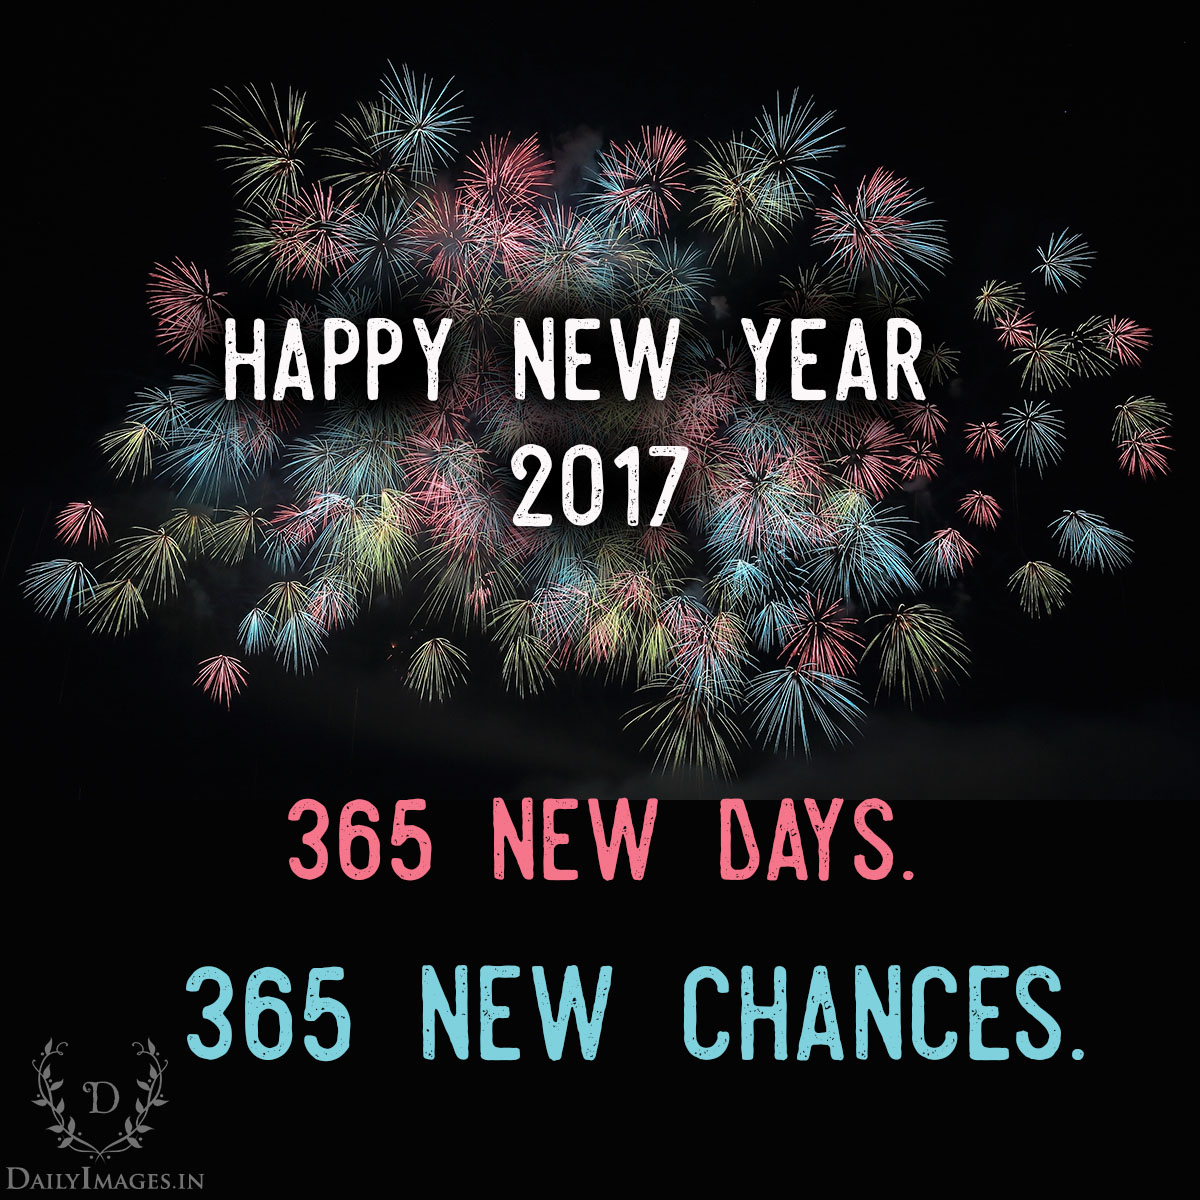 Inspirational Wallpapers With Quotes High Resolution Happy New Year Images With Warm Wishes Quotes And